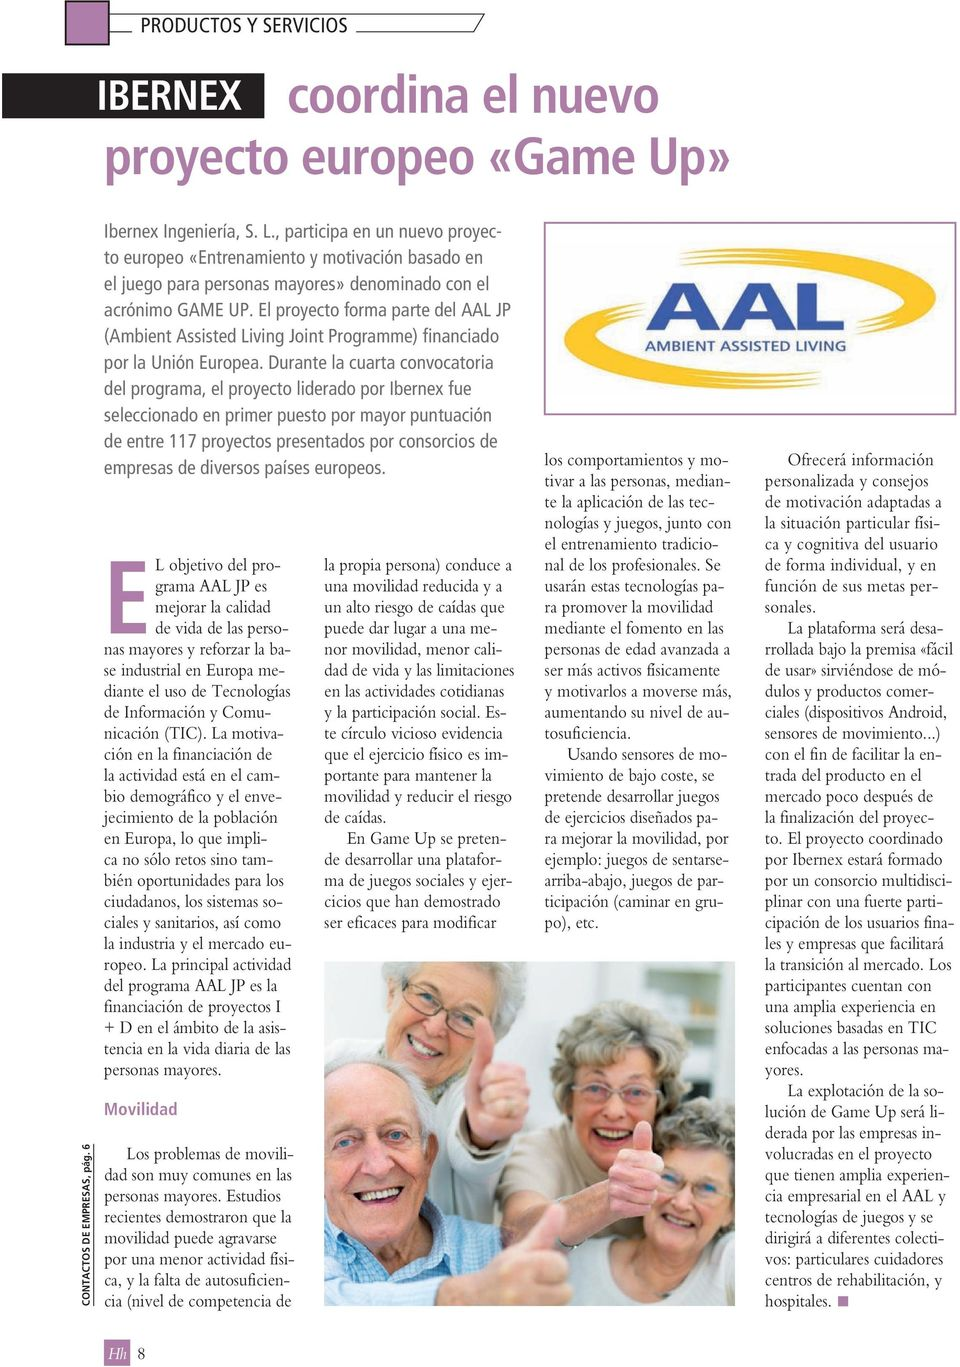 El proyecto forma parte del AAL JP (Ambient Assisted Living Joint Programme) financiado por la Unión Europea.